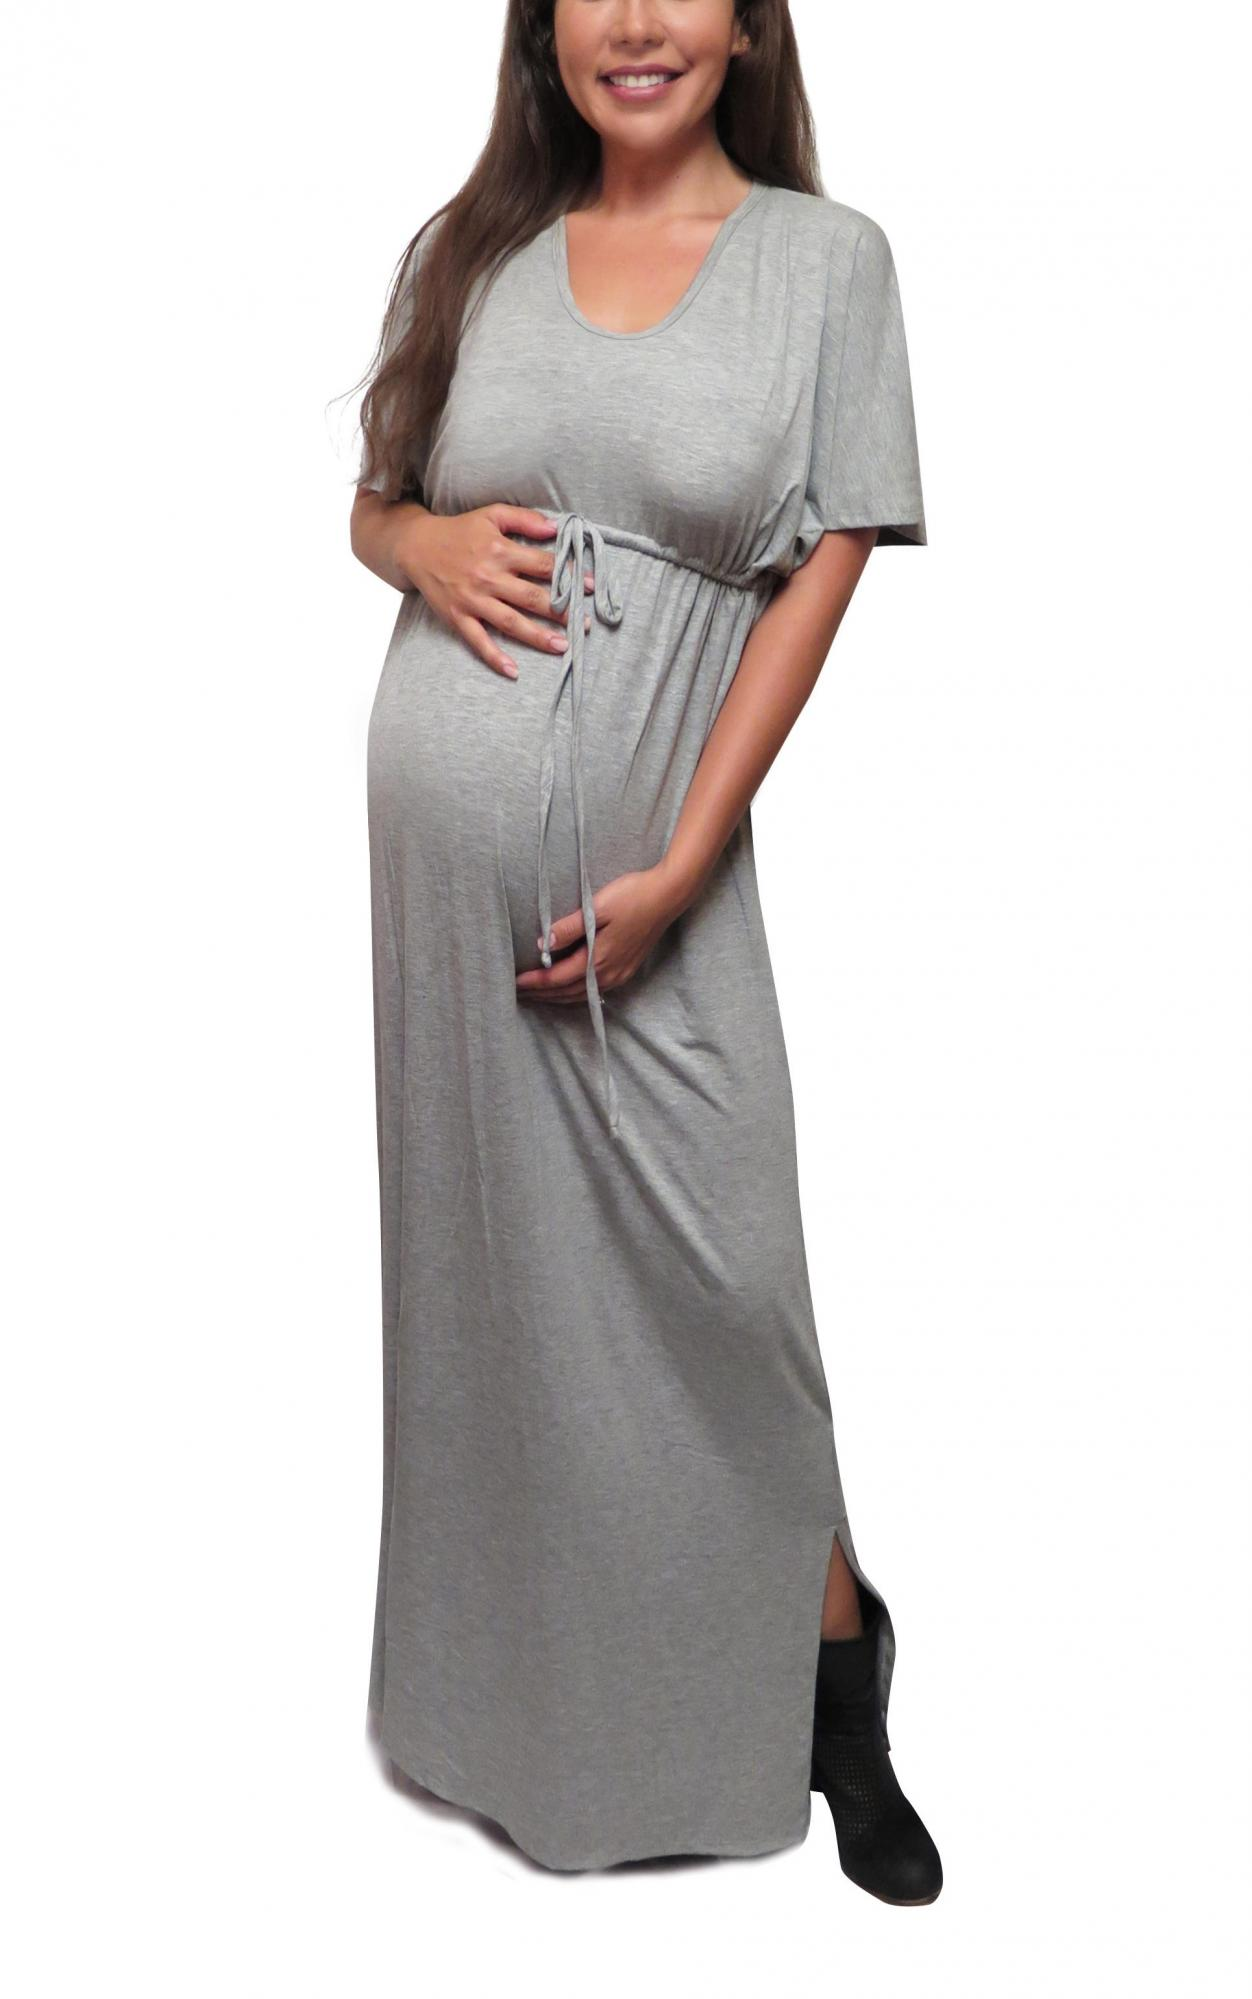 b05dc6c1223e9 Bun to Baby Kaftan Maxi Nursing Dress